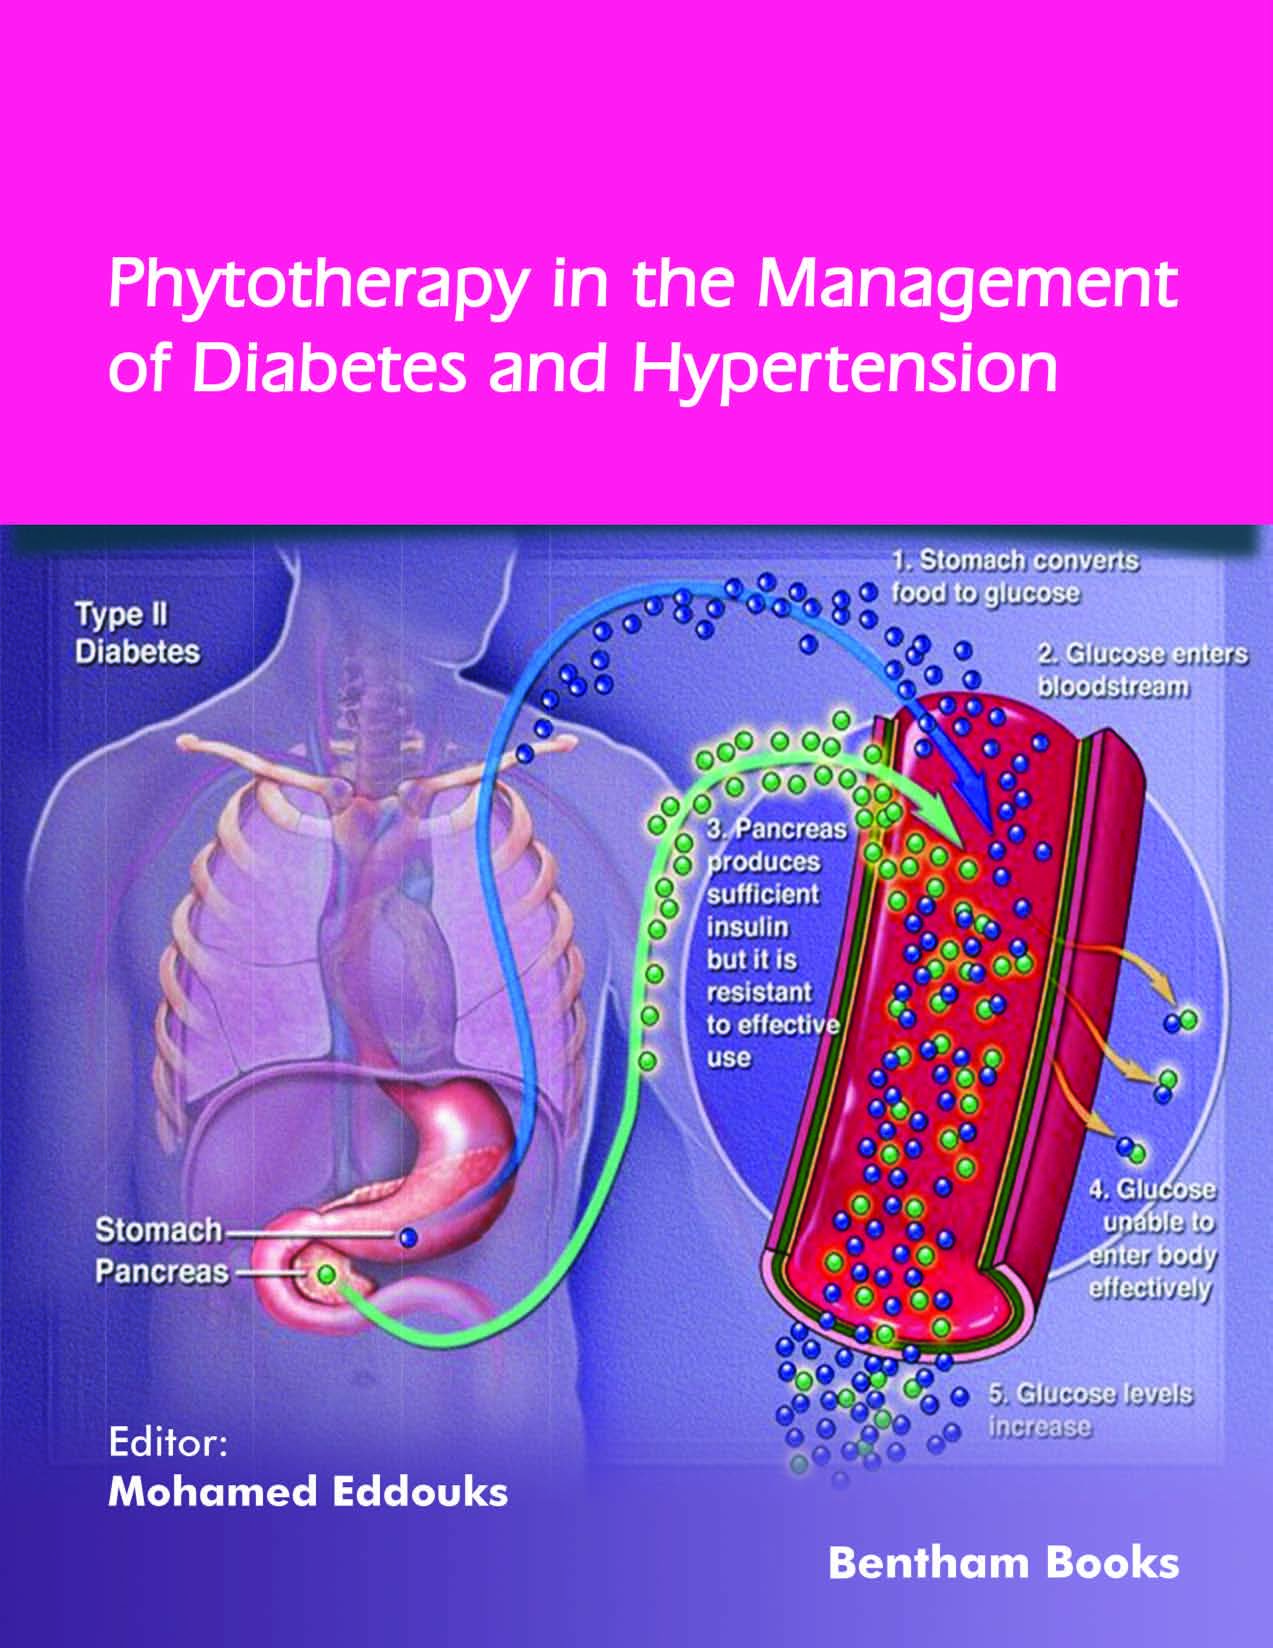 Phytotherapy in the Management of Diabetes and Hypertension